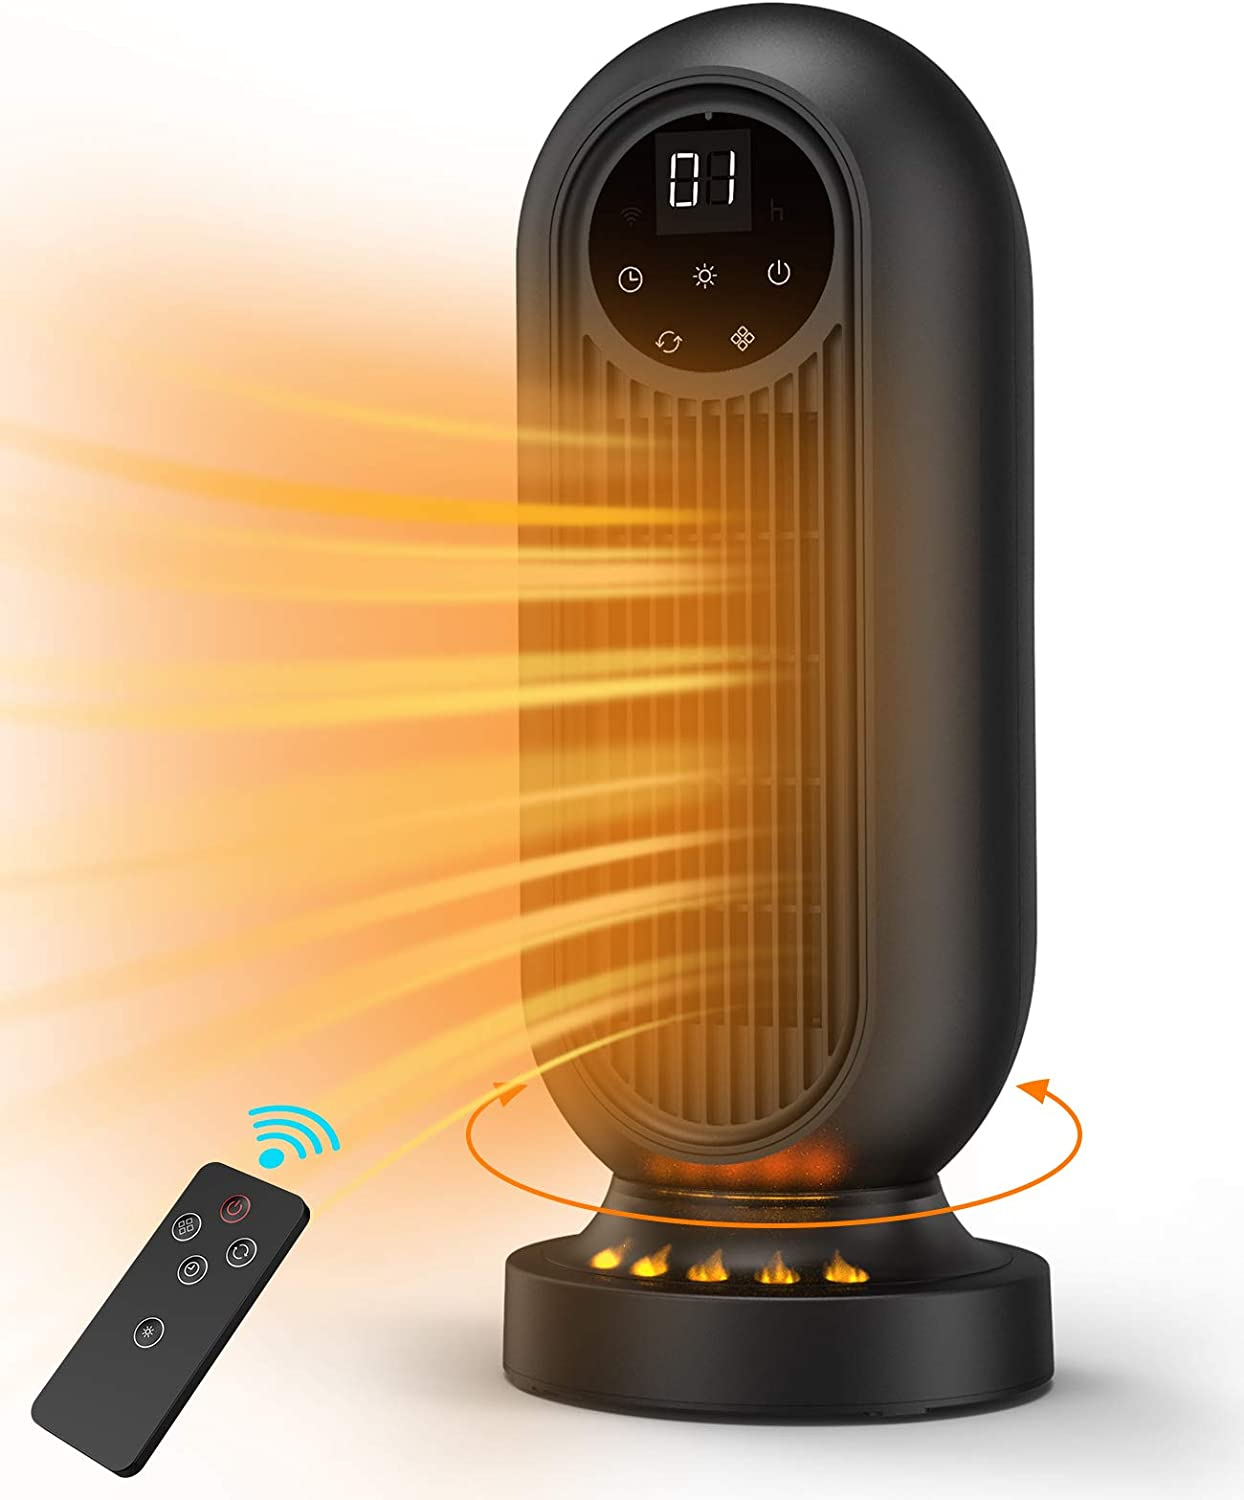 Infray Space Heater, 1500W Oscillating Electric Tower Heater with 3 Modes, Portable Fast Heating Ceramic Fan Heater with 12H Timer, Remote Control & LED Display for Home Indoor Use